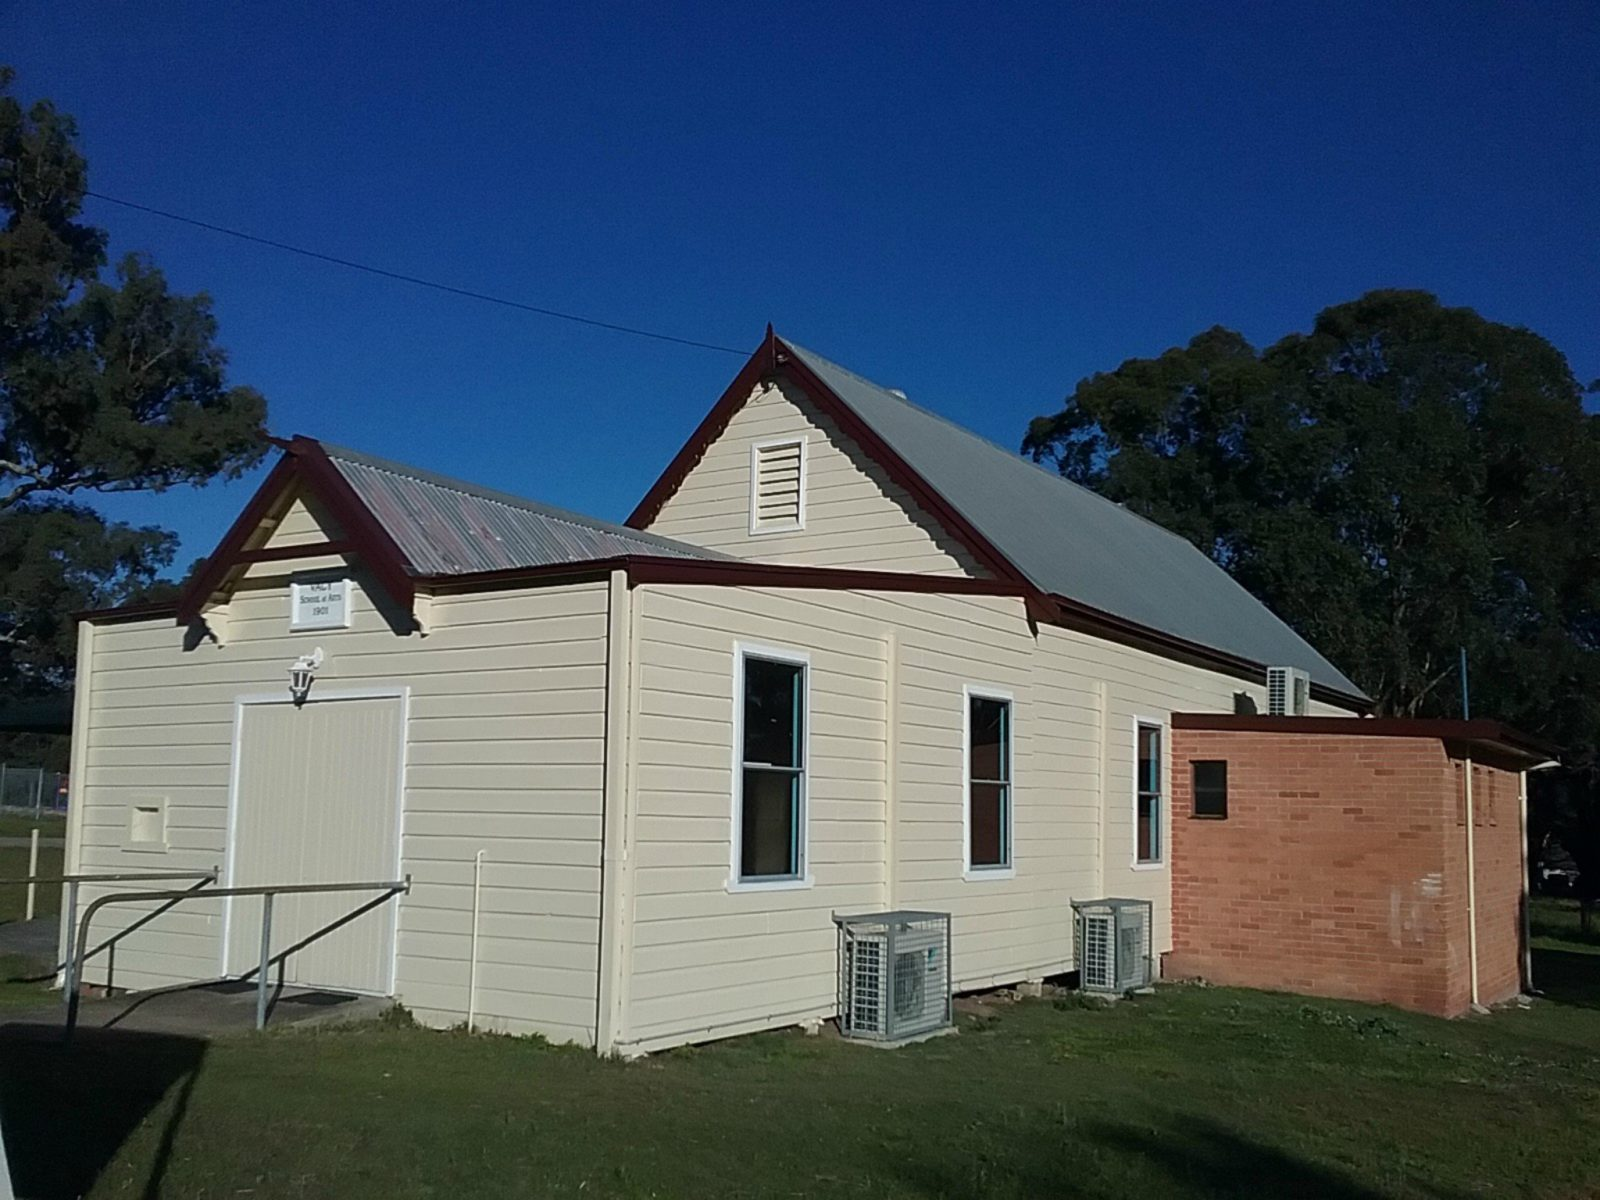 Vacy School of Arts Hall